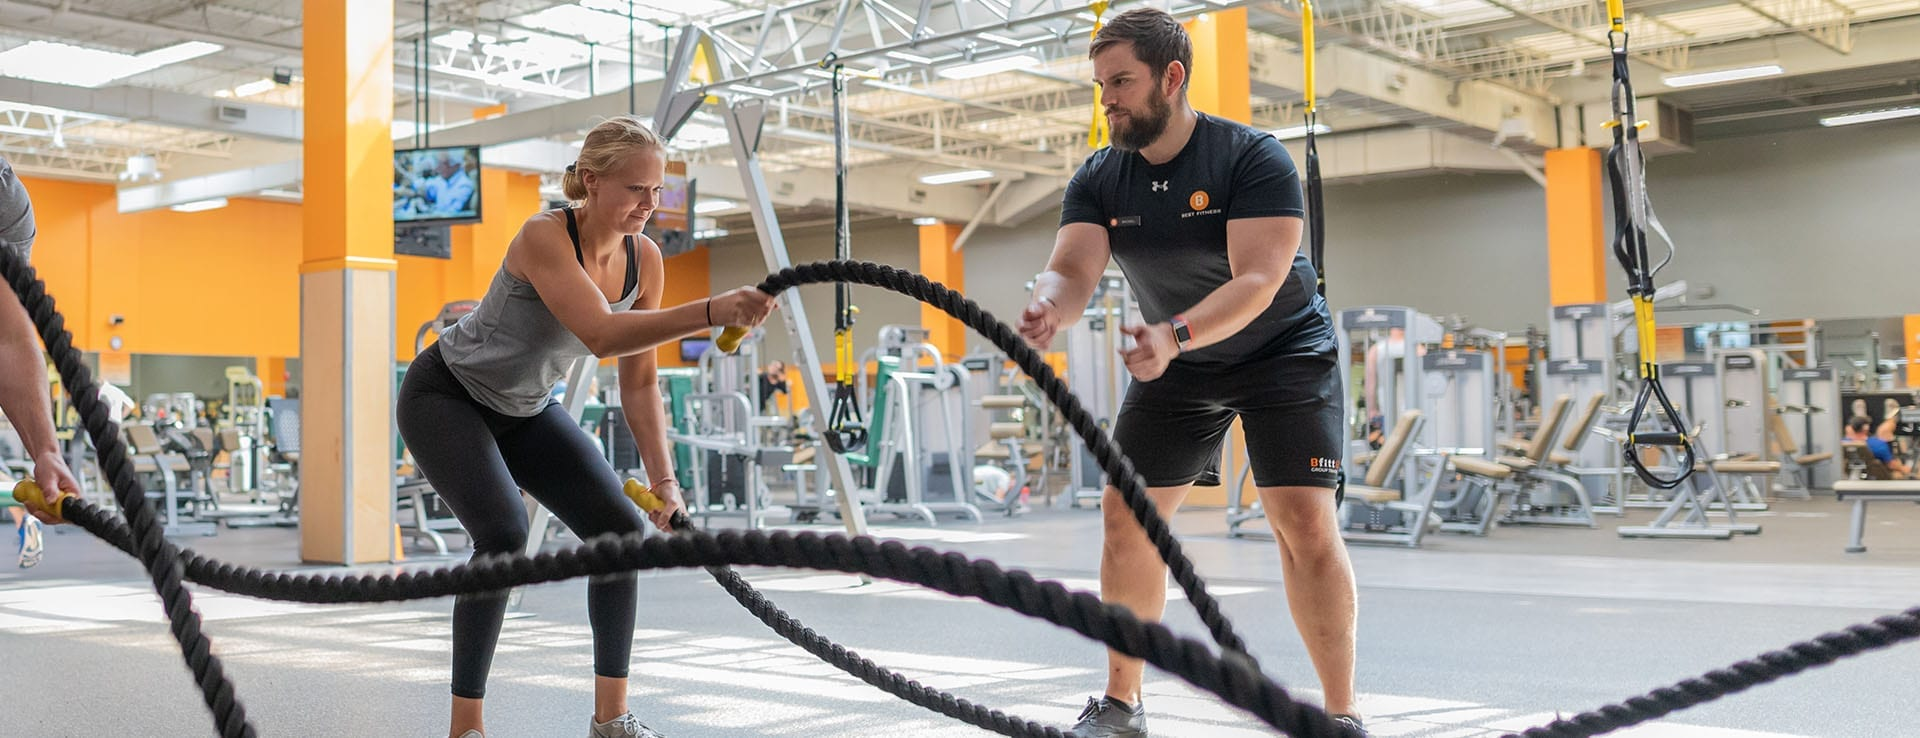 personal trainer guiding gym member in functional training exercises